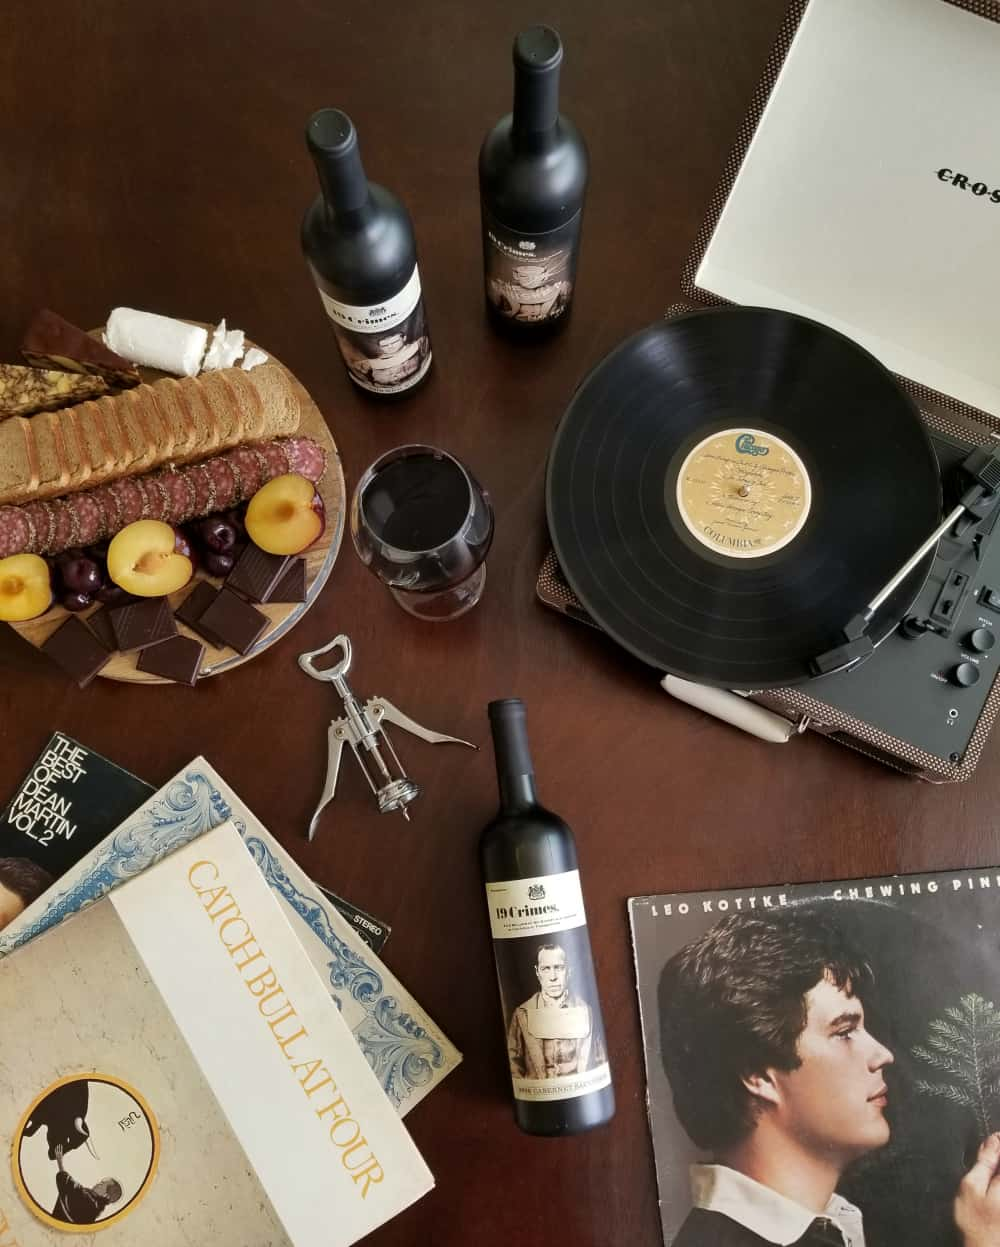 Hosting a Vinyl Party with 19 Crimes Wine and Living Wine Labels